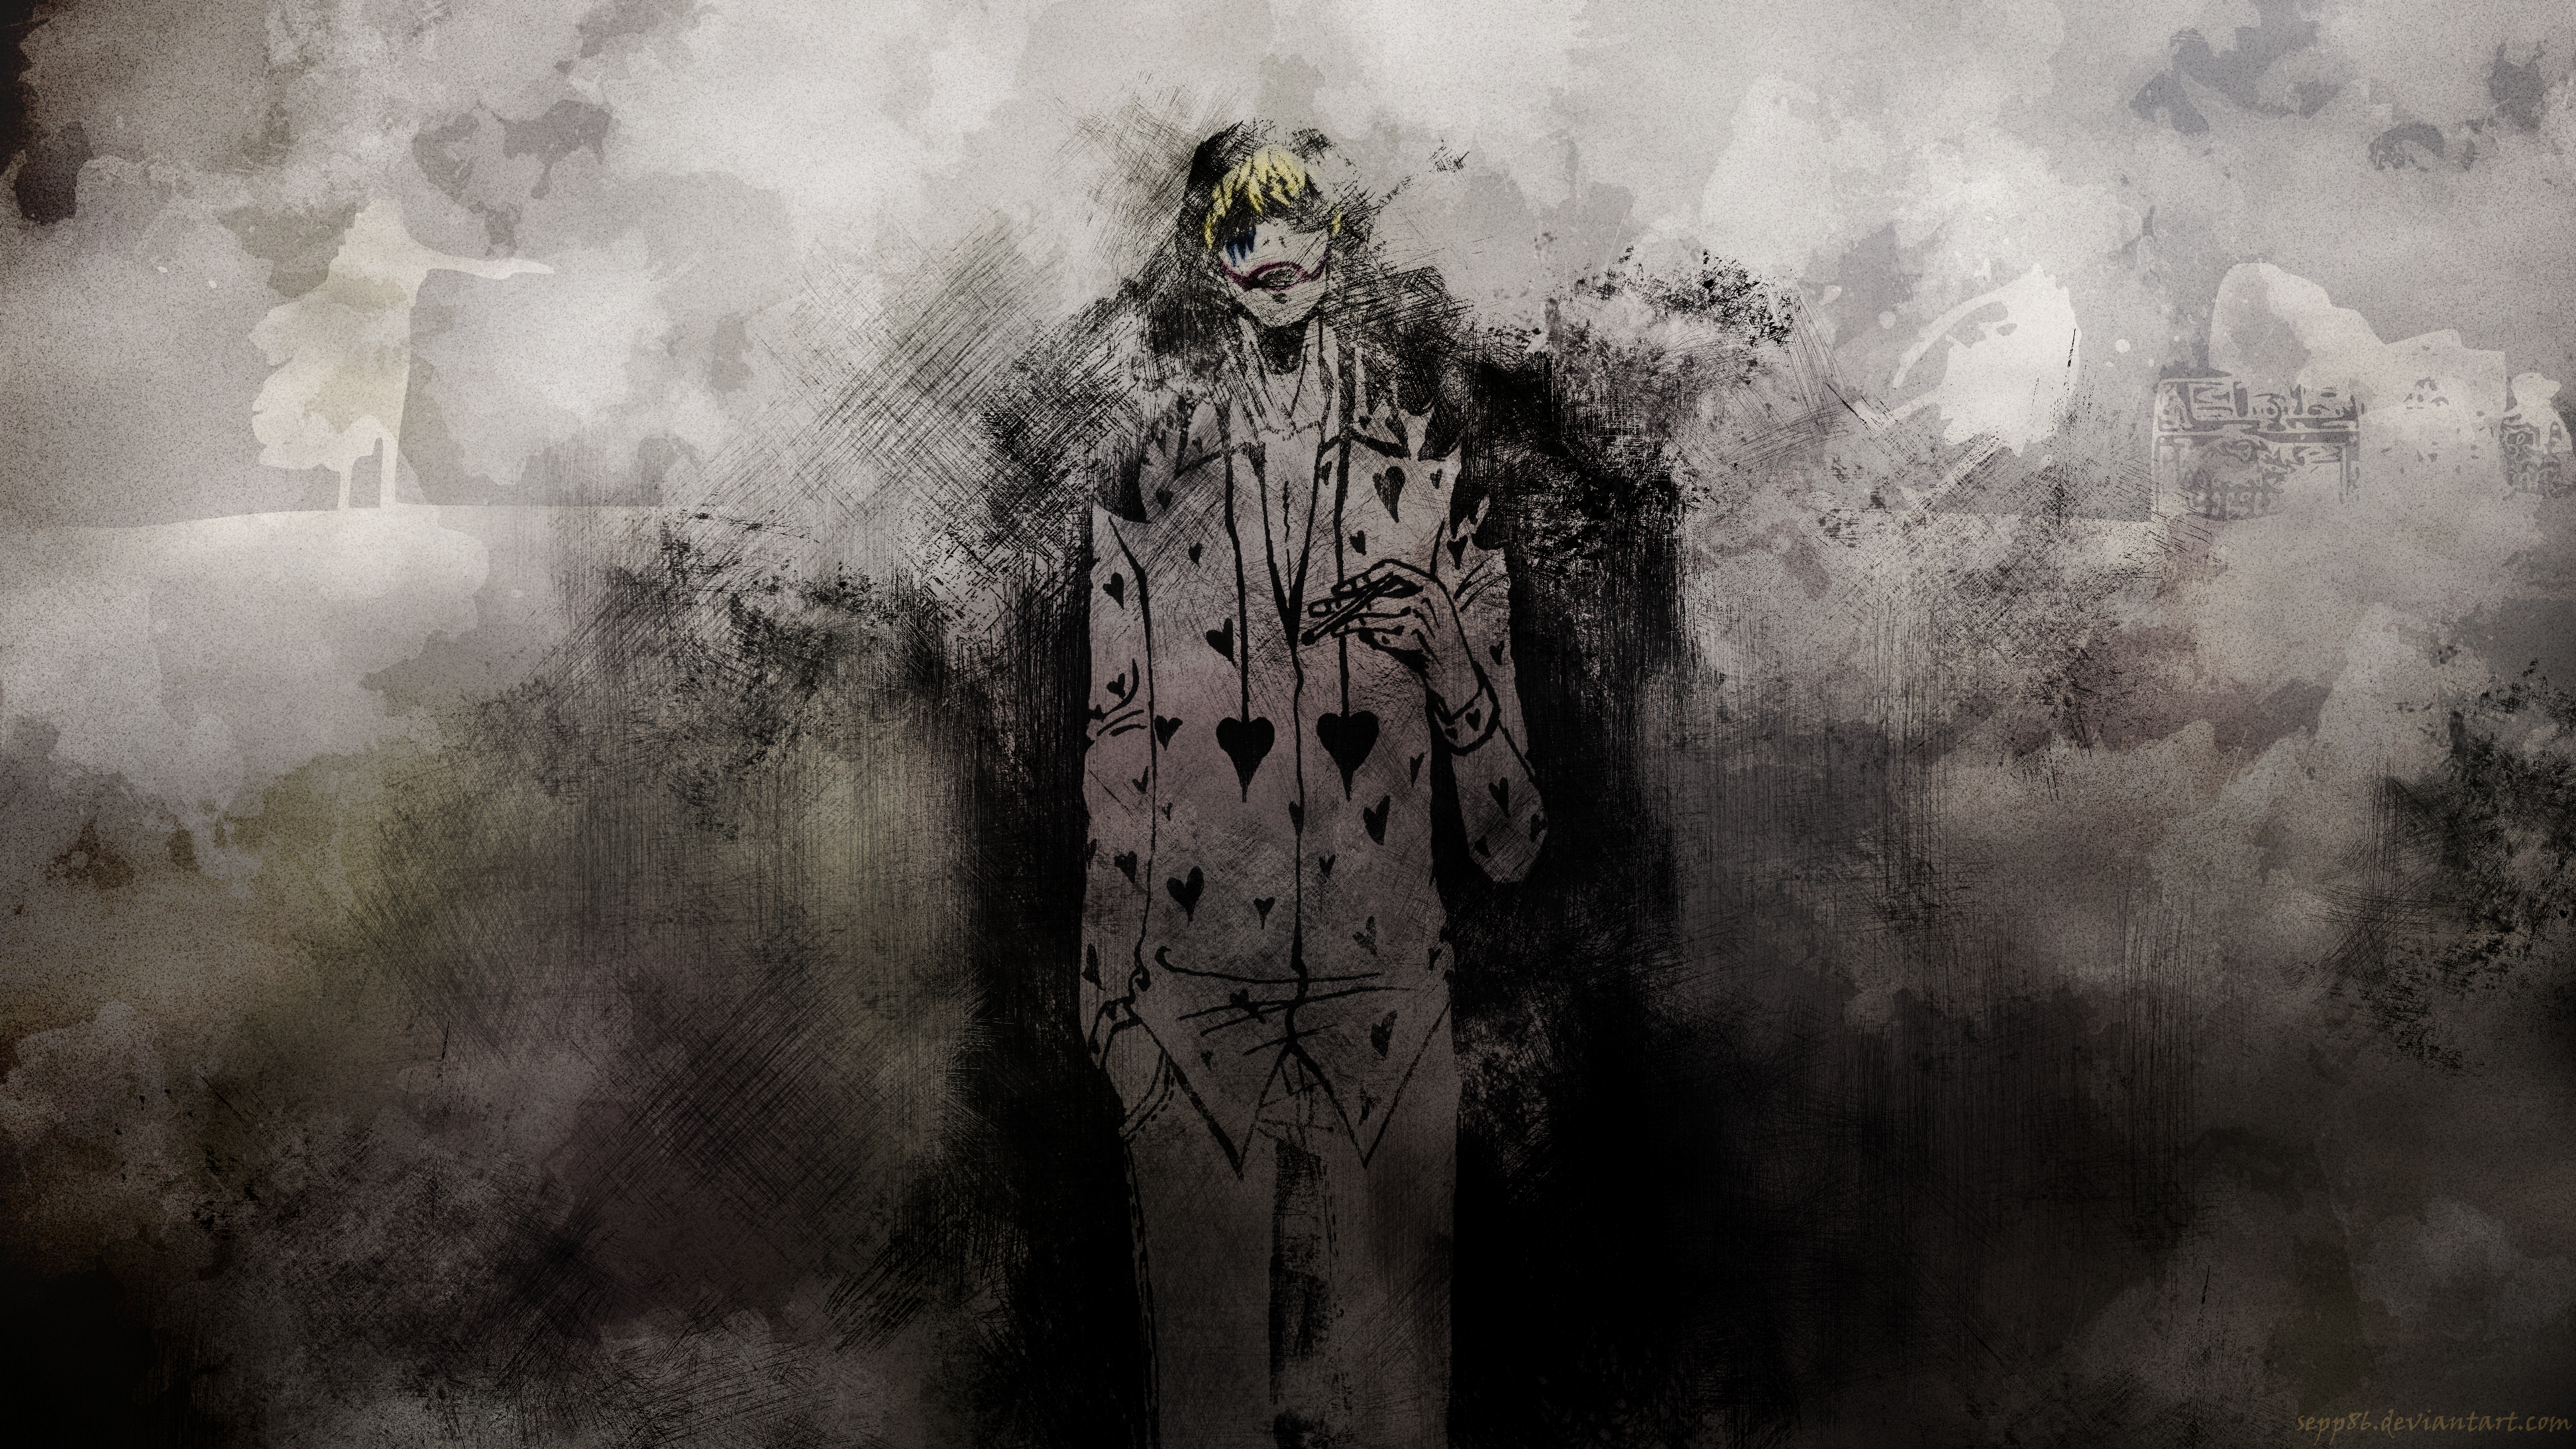 One Piece Corazon 4k Ultra Hd Wallpaper Background Image 3840x2160 Id 1080269 Wallpaper Abyss